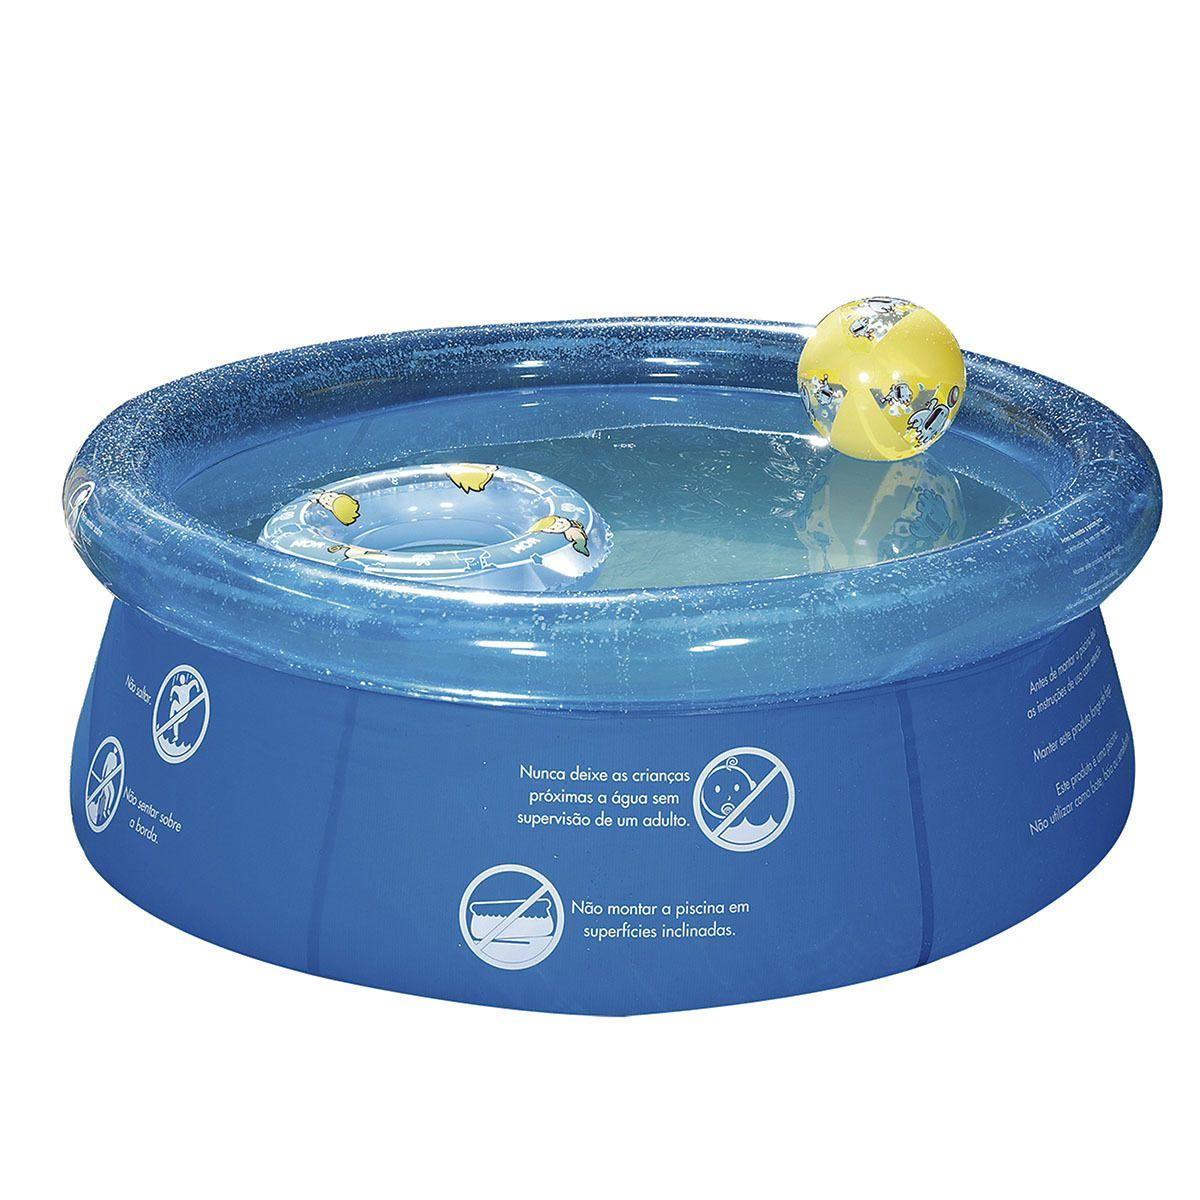 Piscina infantil 1000 litros splash fun mor piscina for Piscina 1000 litros